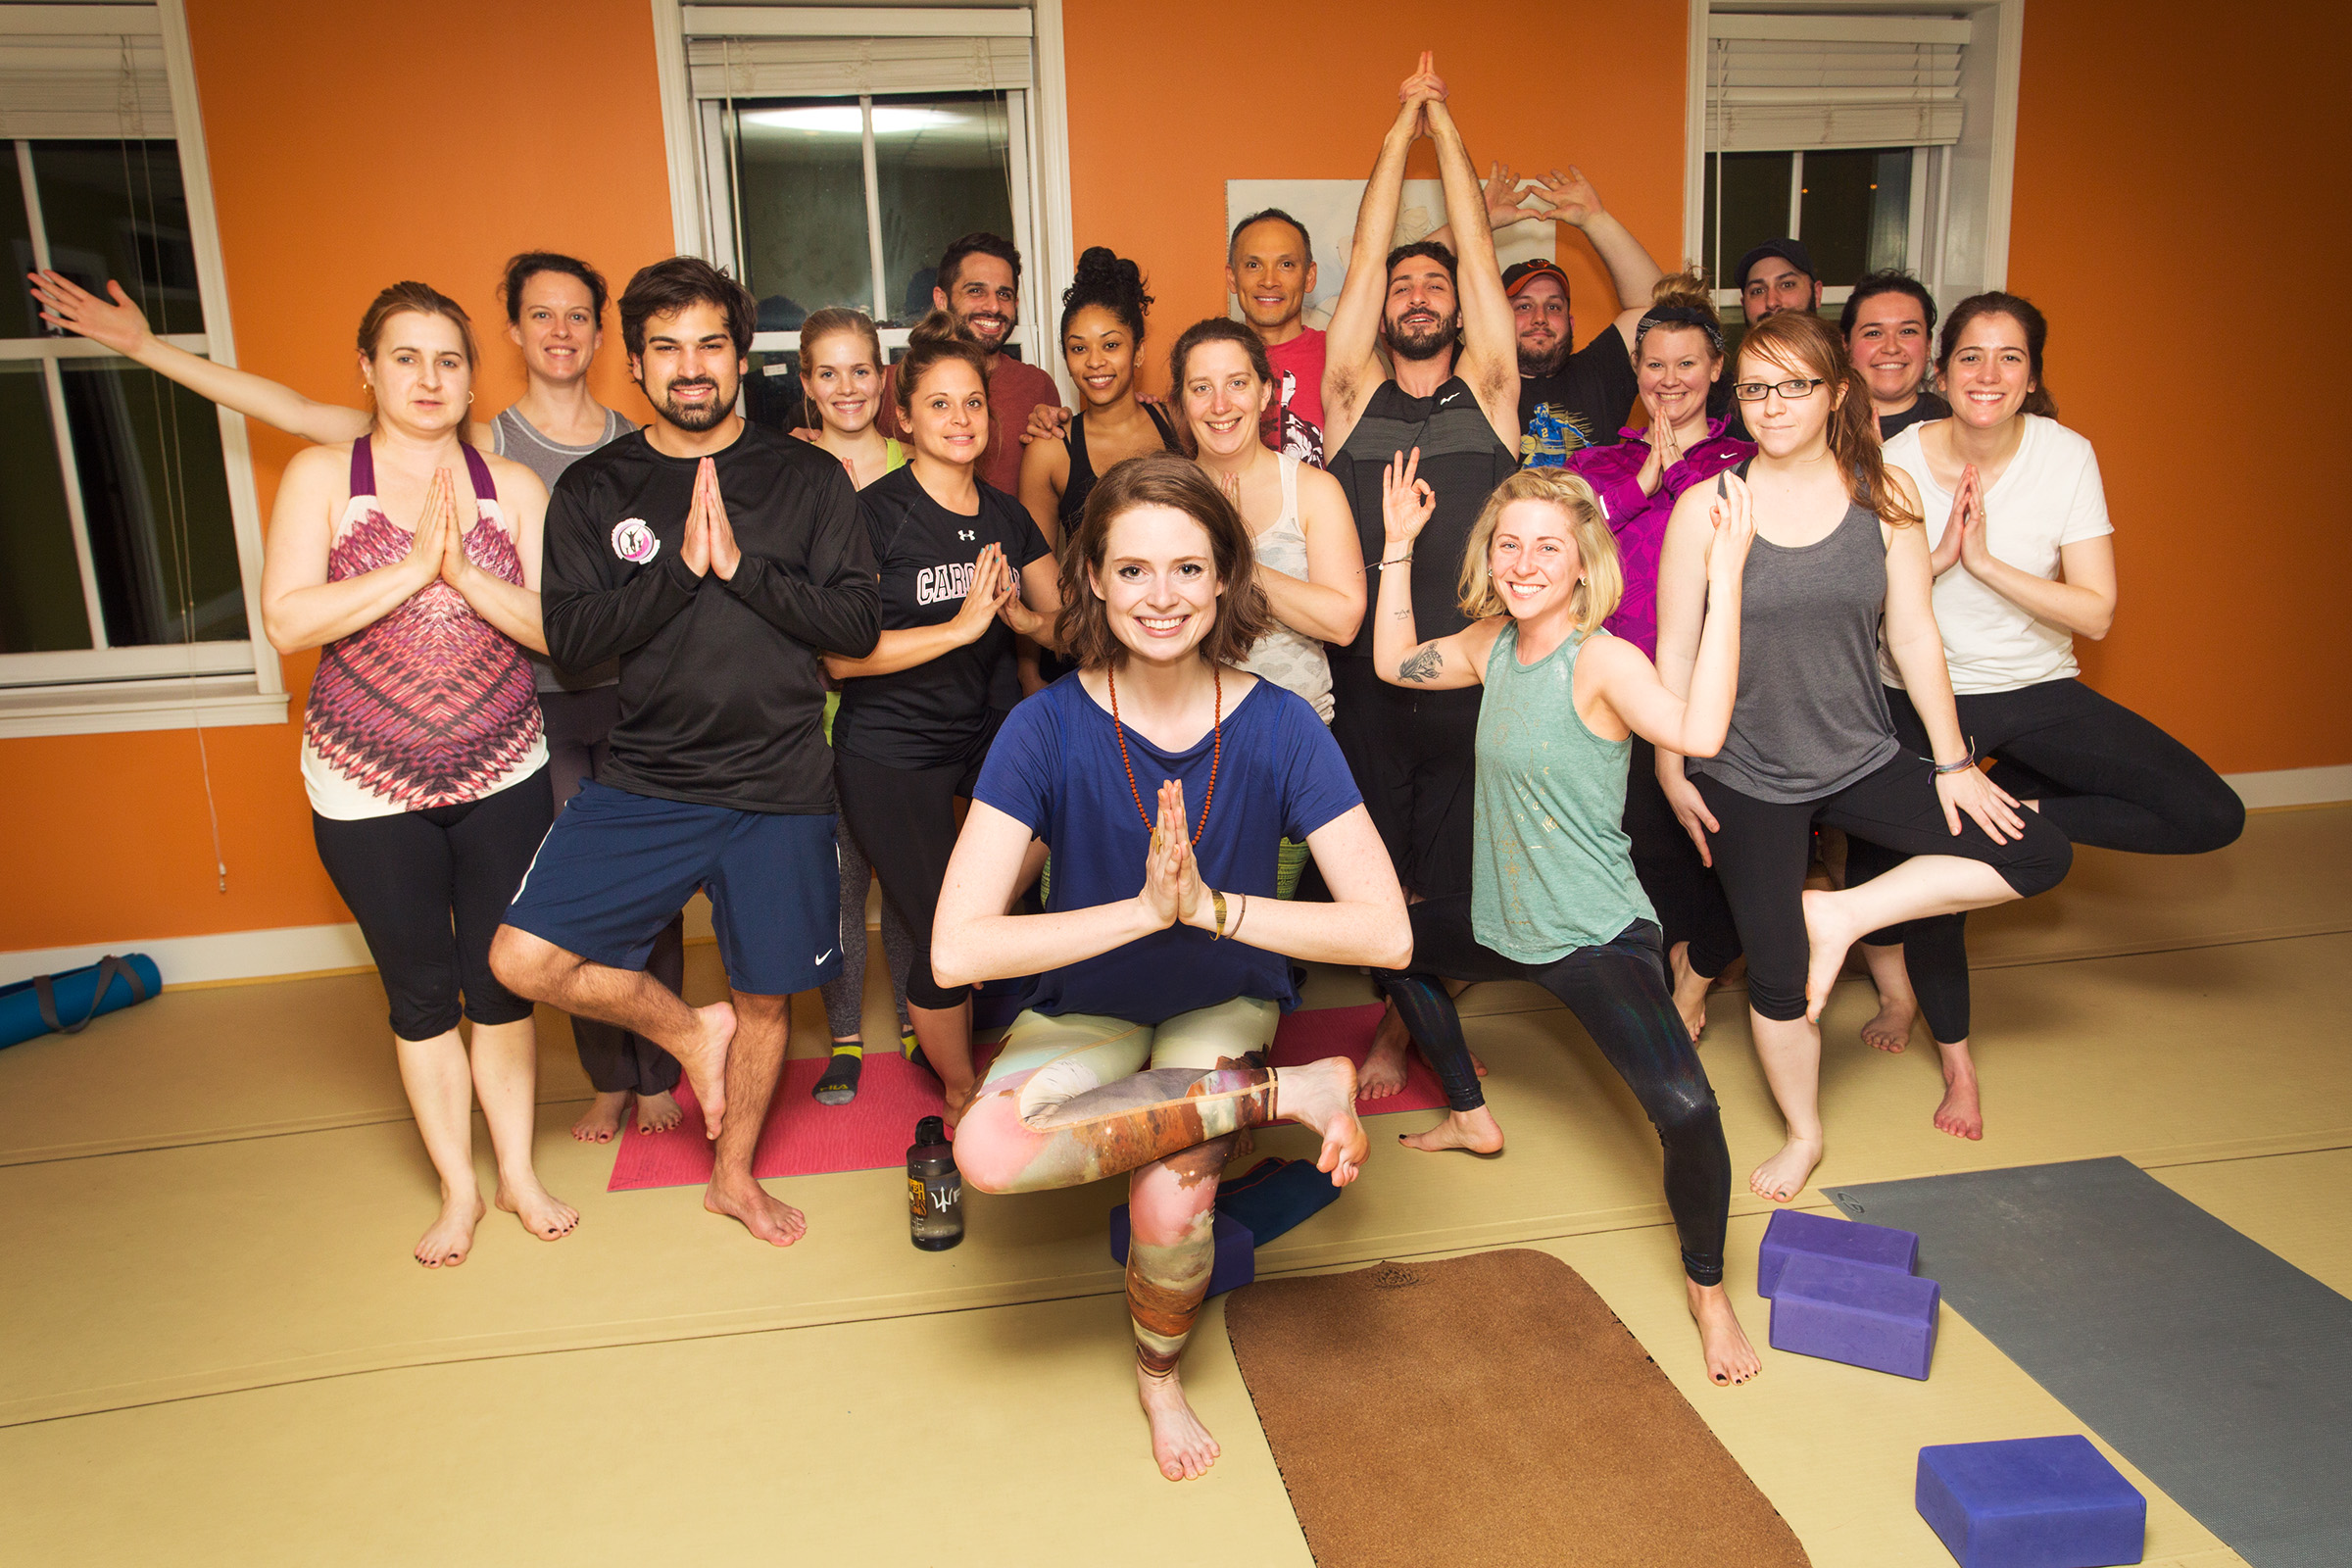 Photo by Graham Snodgrass / taken at YogaWorks Fells Point